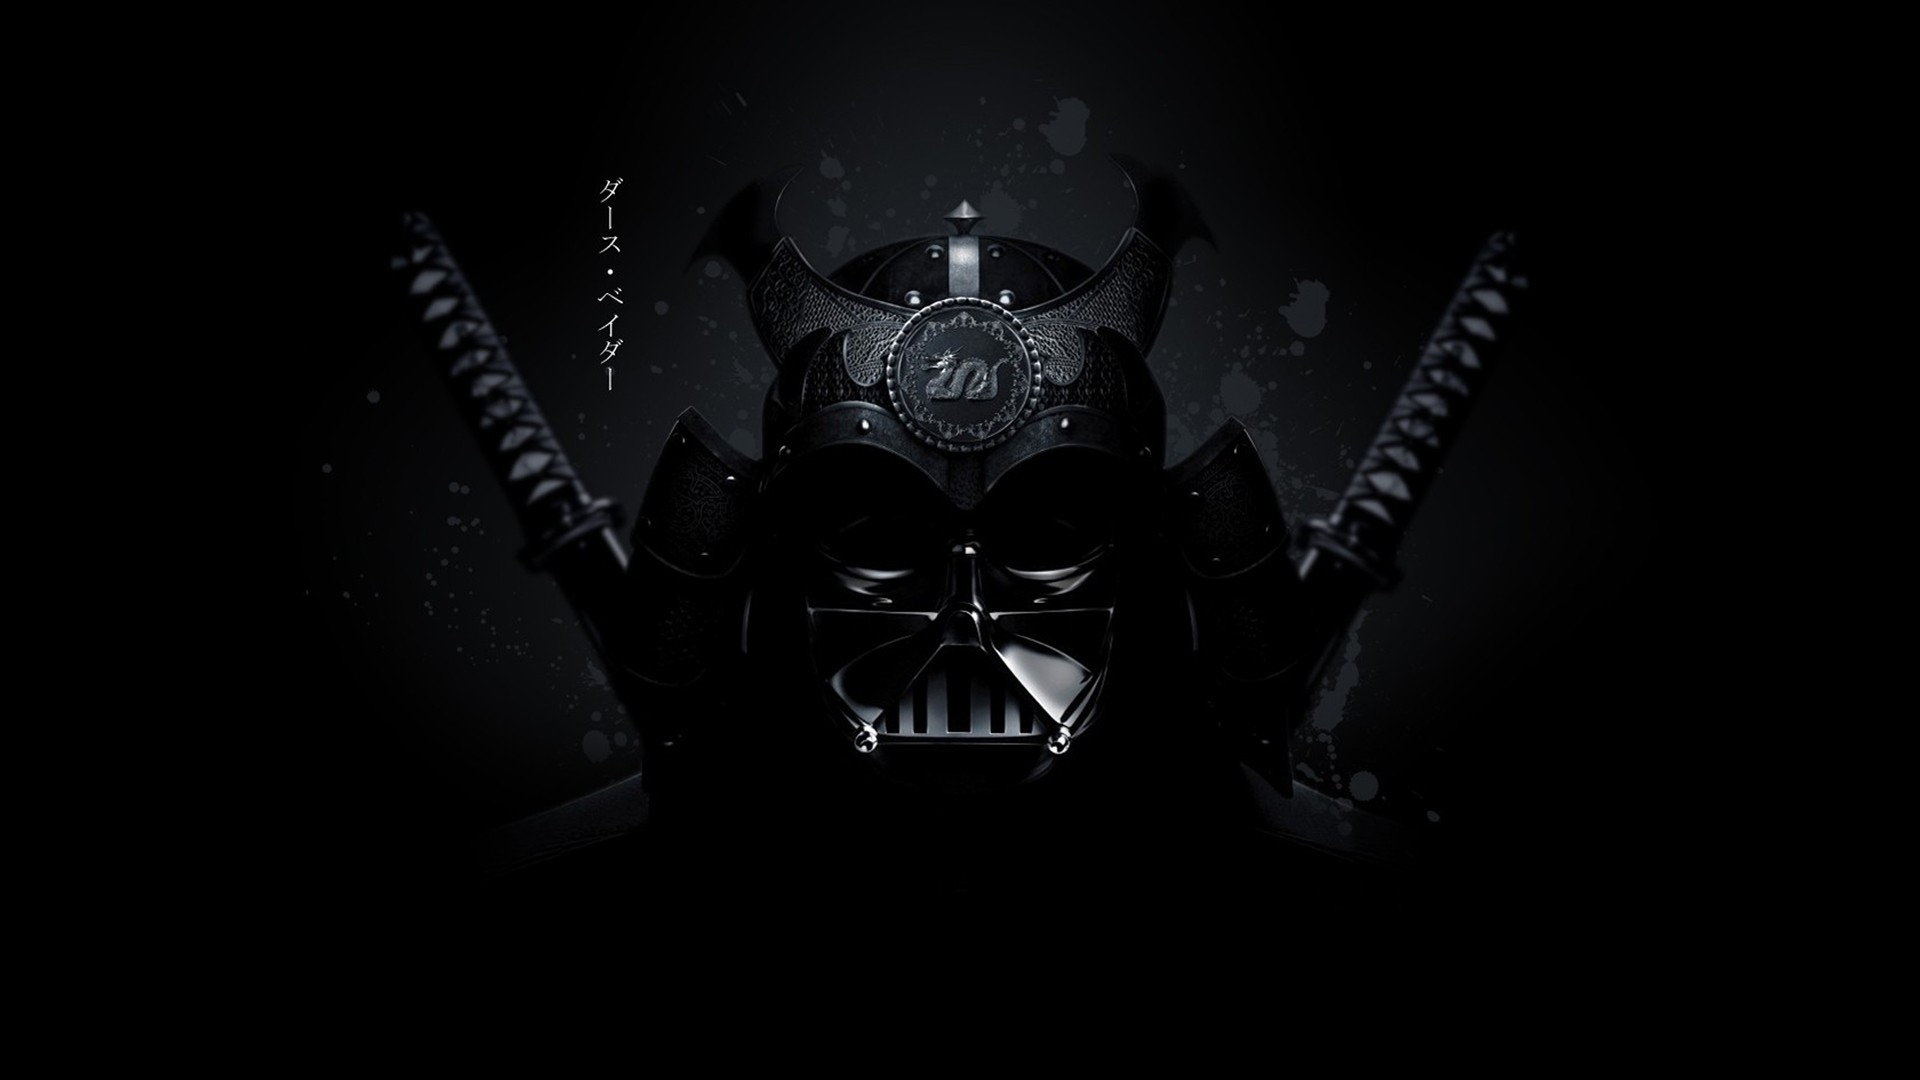 Star Wars Wallpapers For Free Download